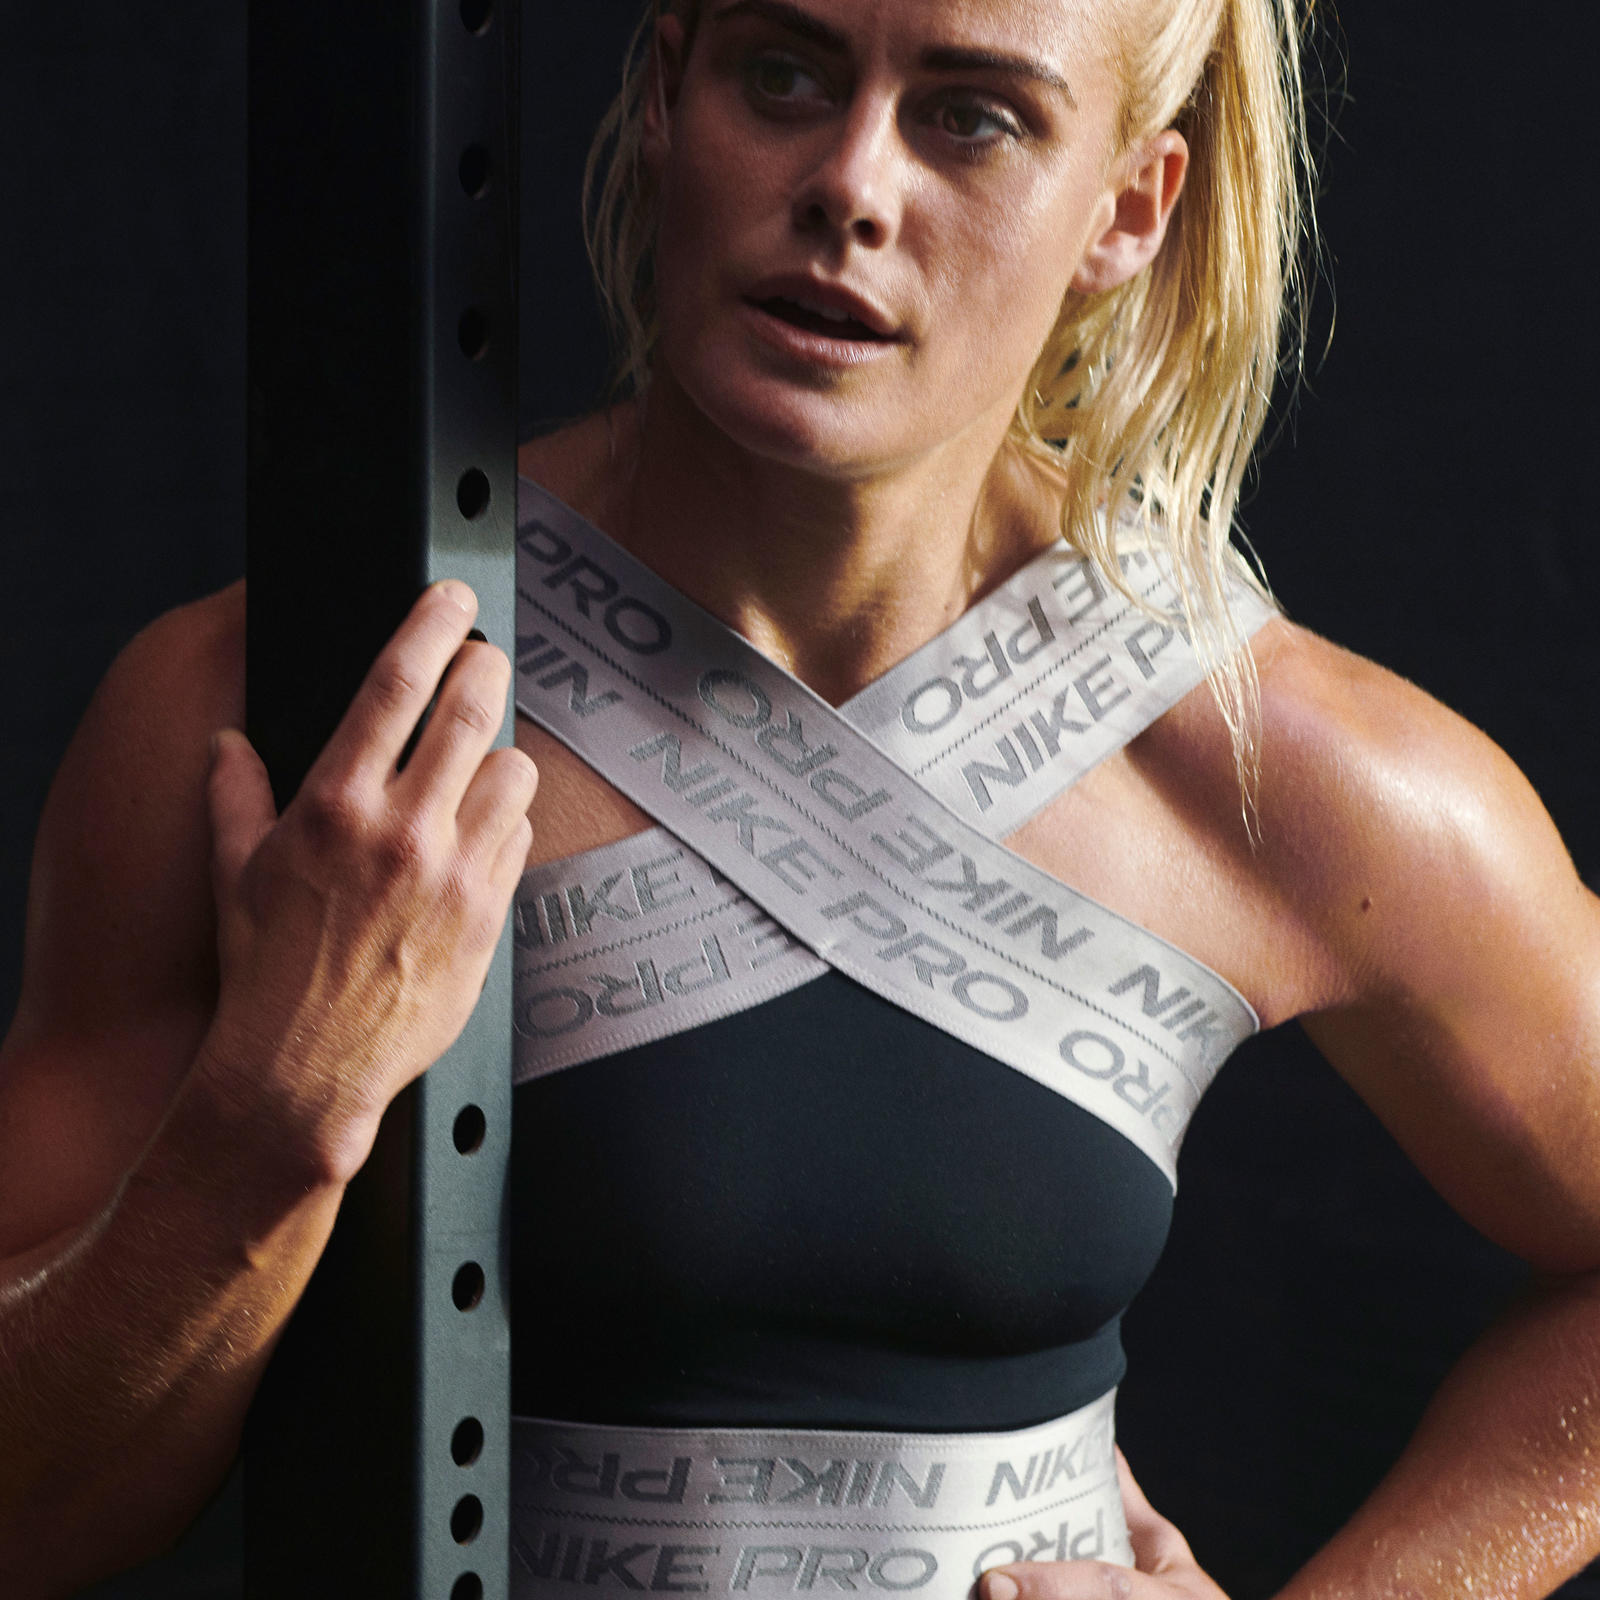 Nike News Nike Training Nike Pro Collection Sigmundsdottir 1